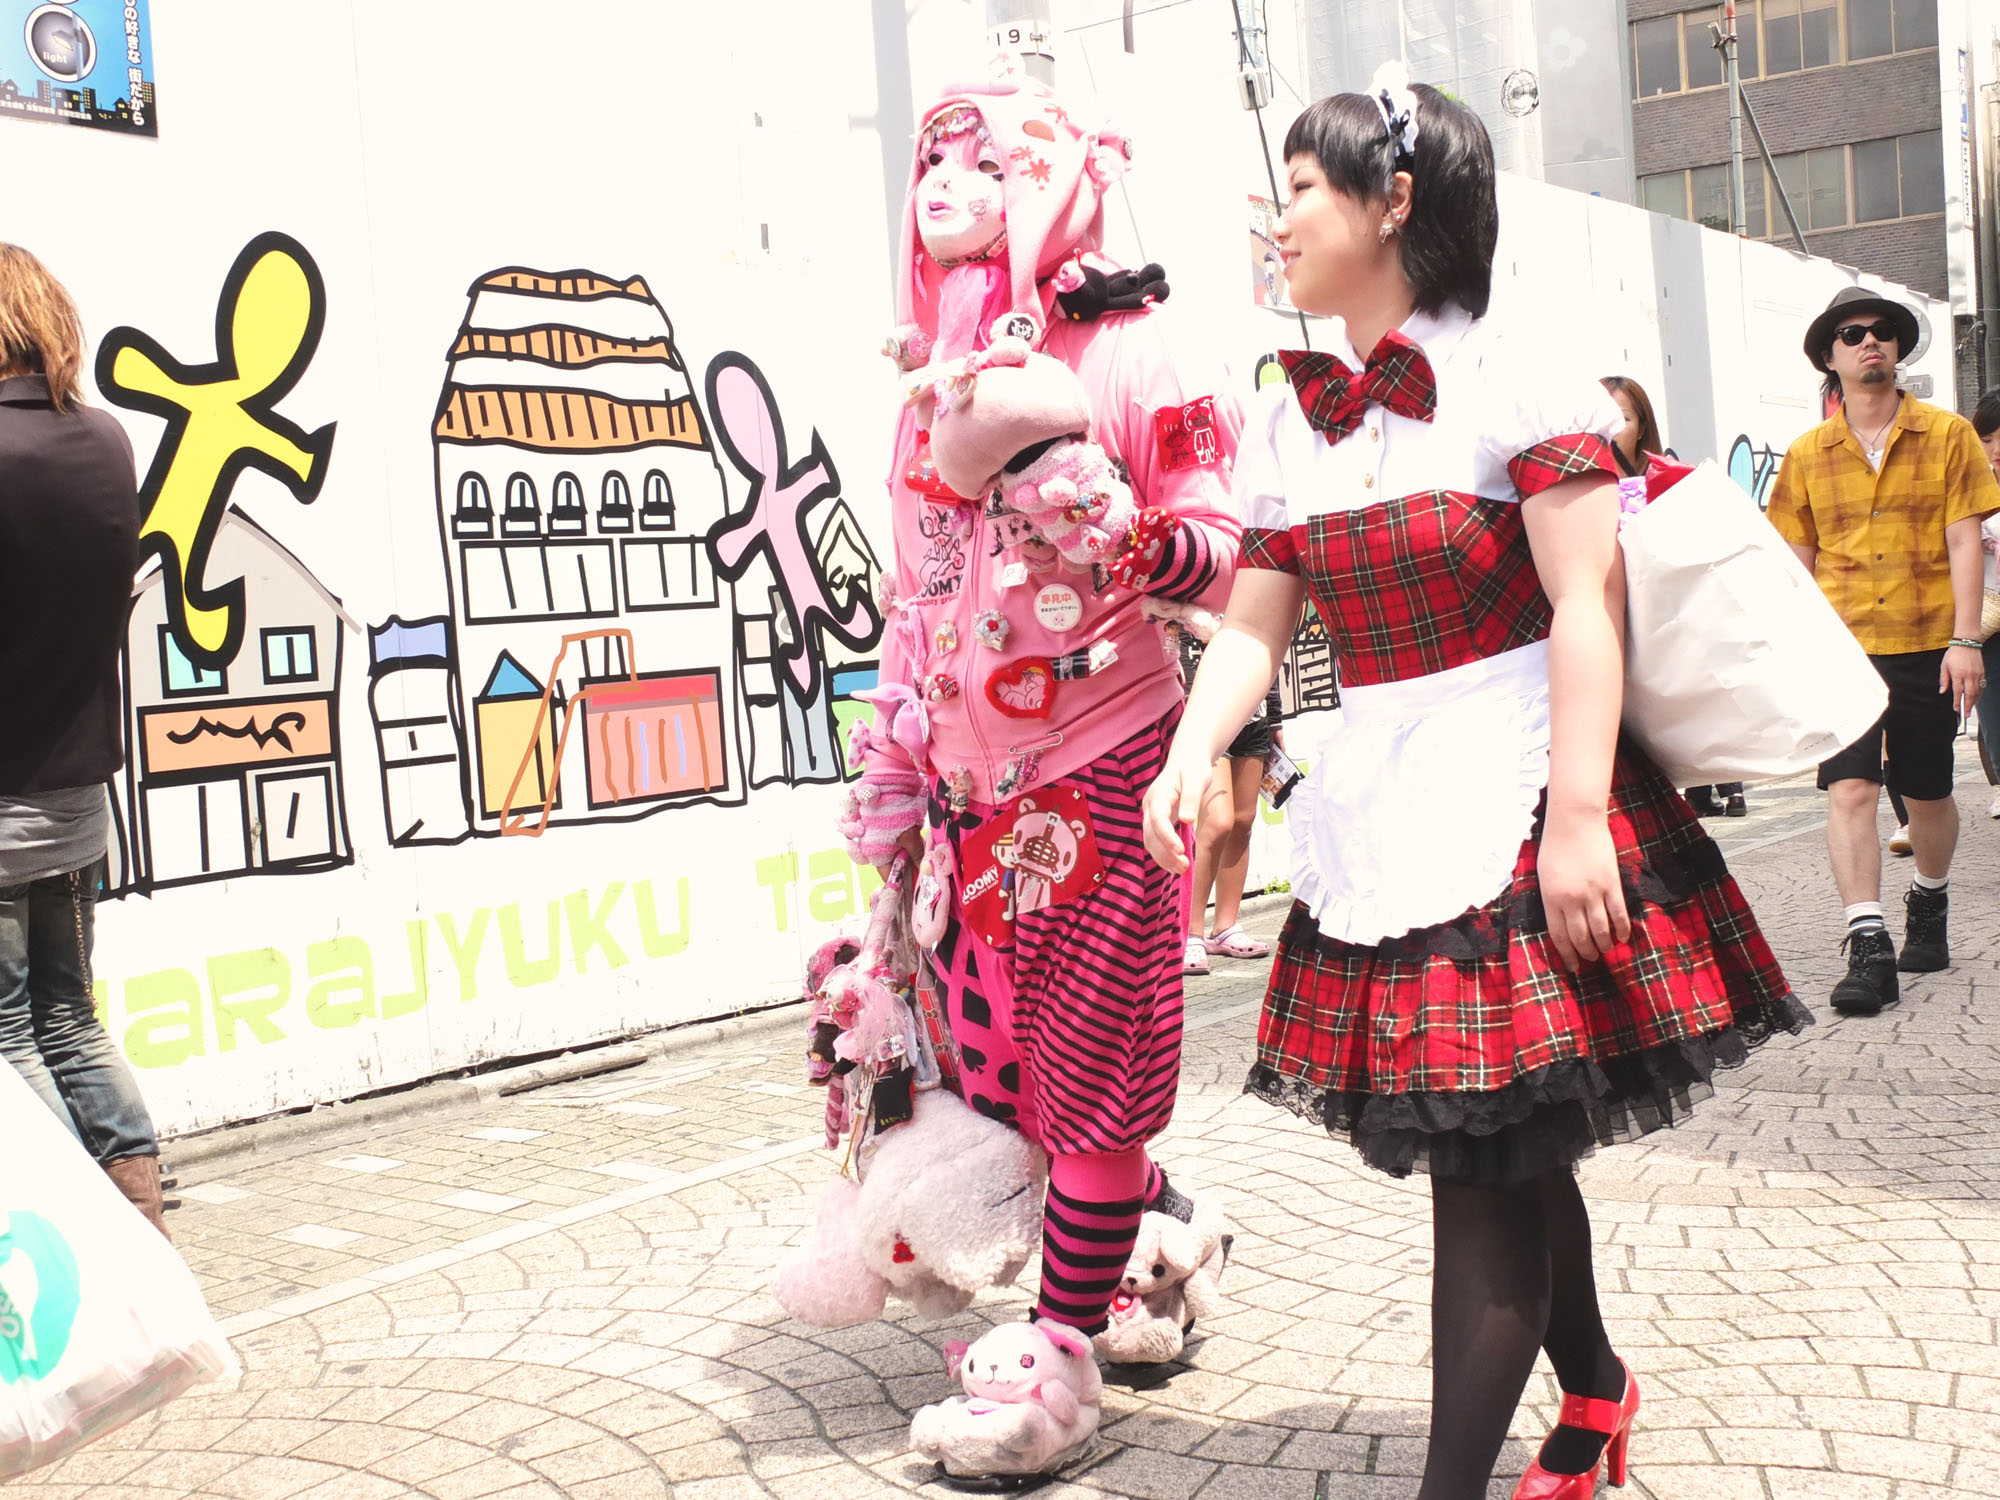 Takeshita street in Harajuku. Take a stroll through on a Sunday and you will see a lot of interesting people.